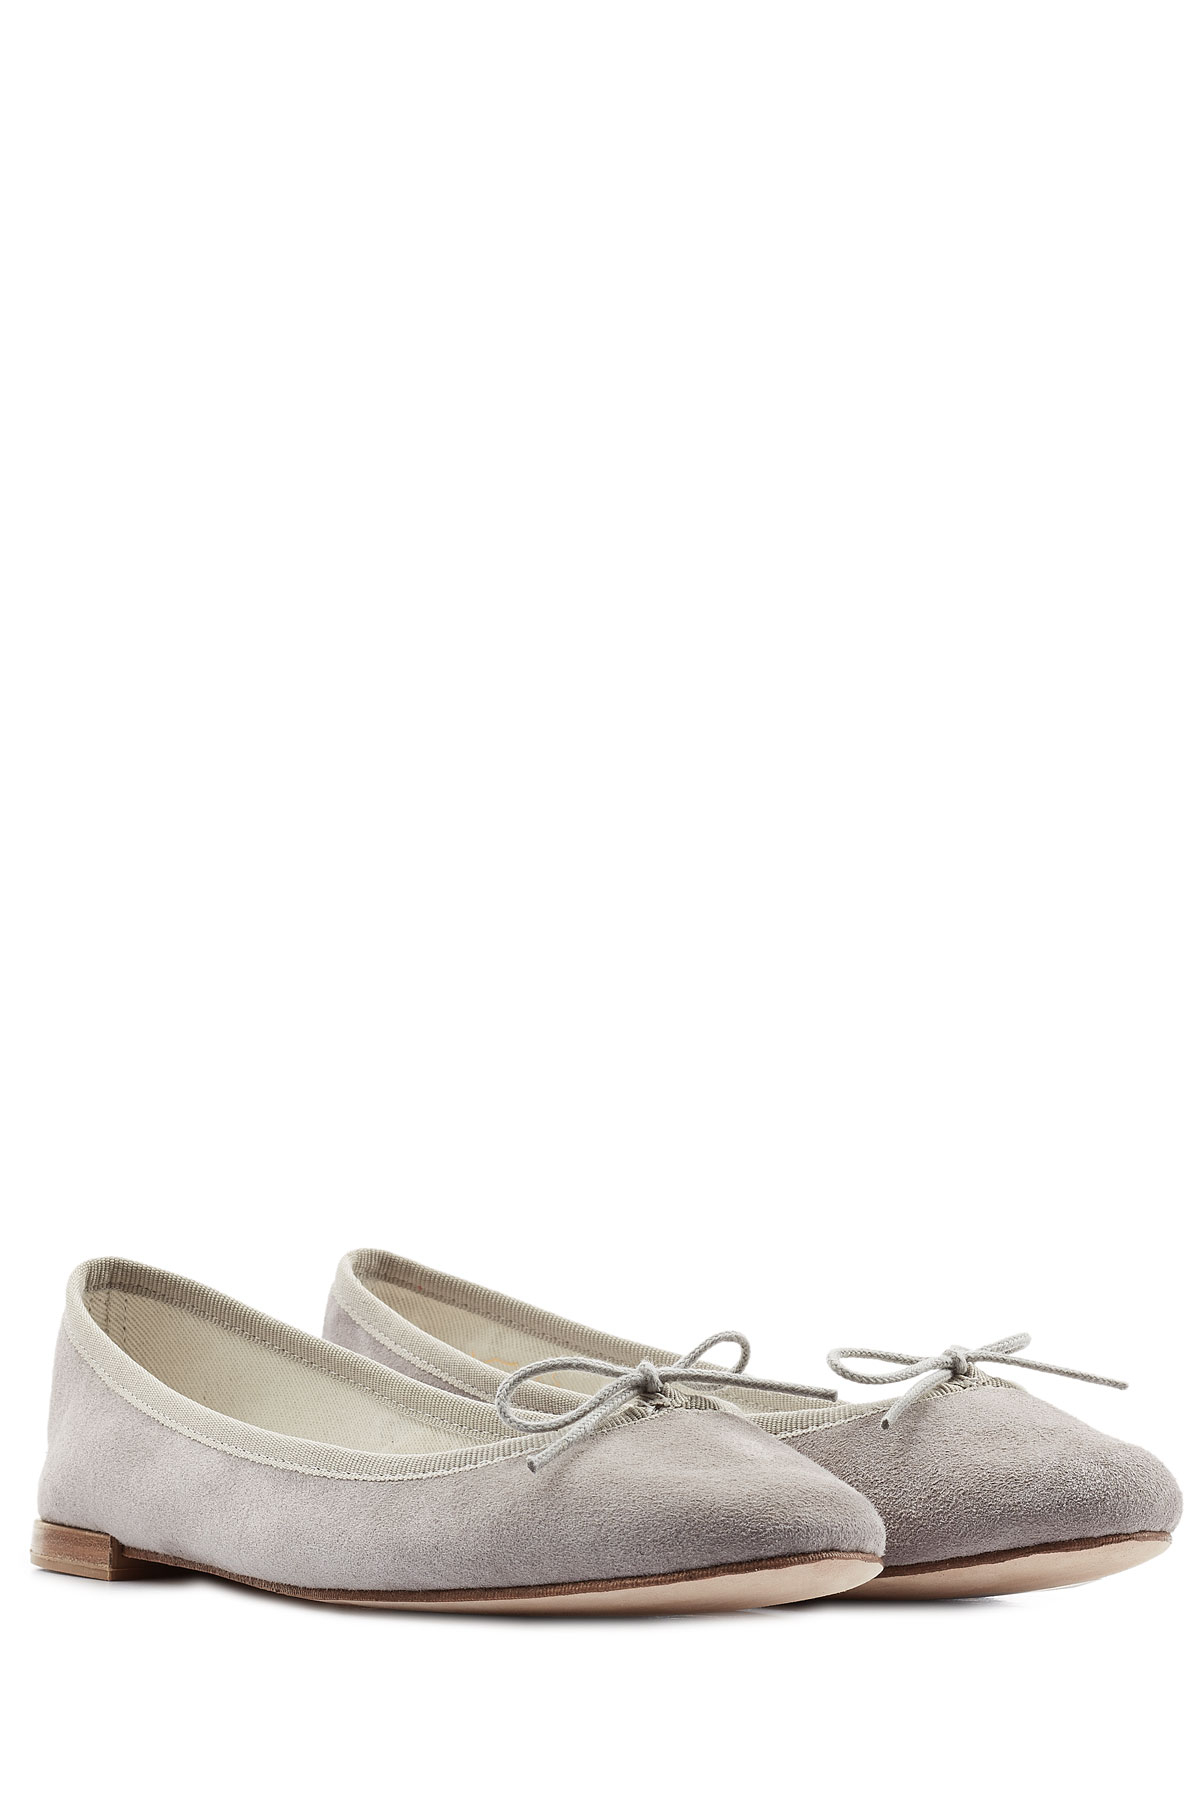 cheap sale with credit card Repetto Suede Ballet Flats cheap low cost 53kvIp8